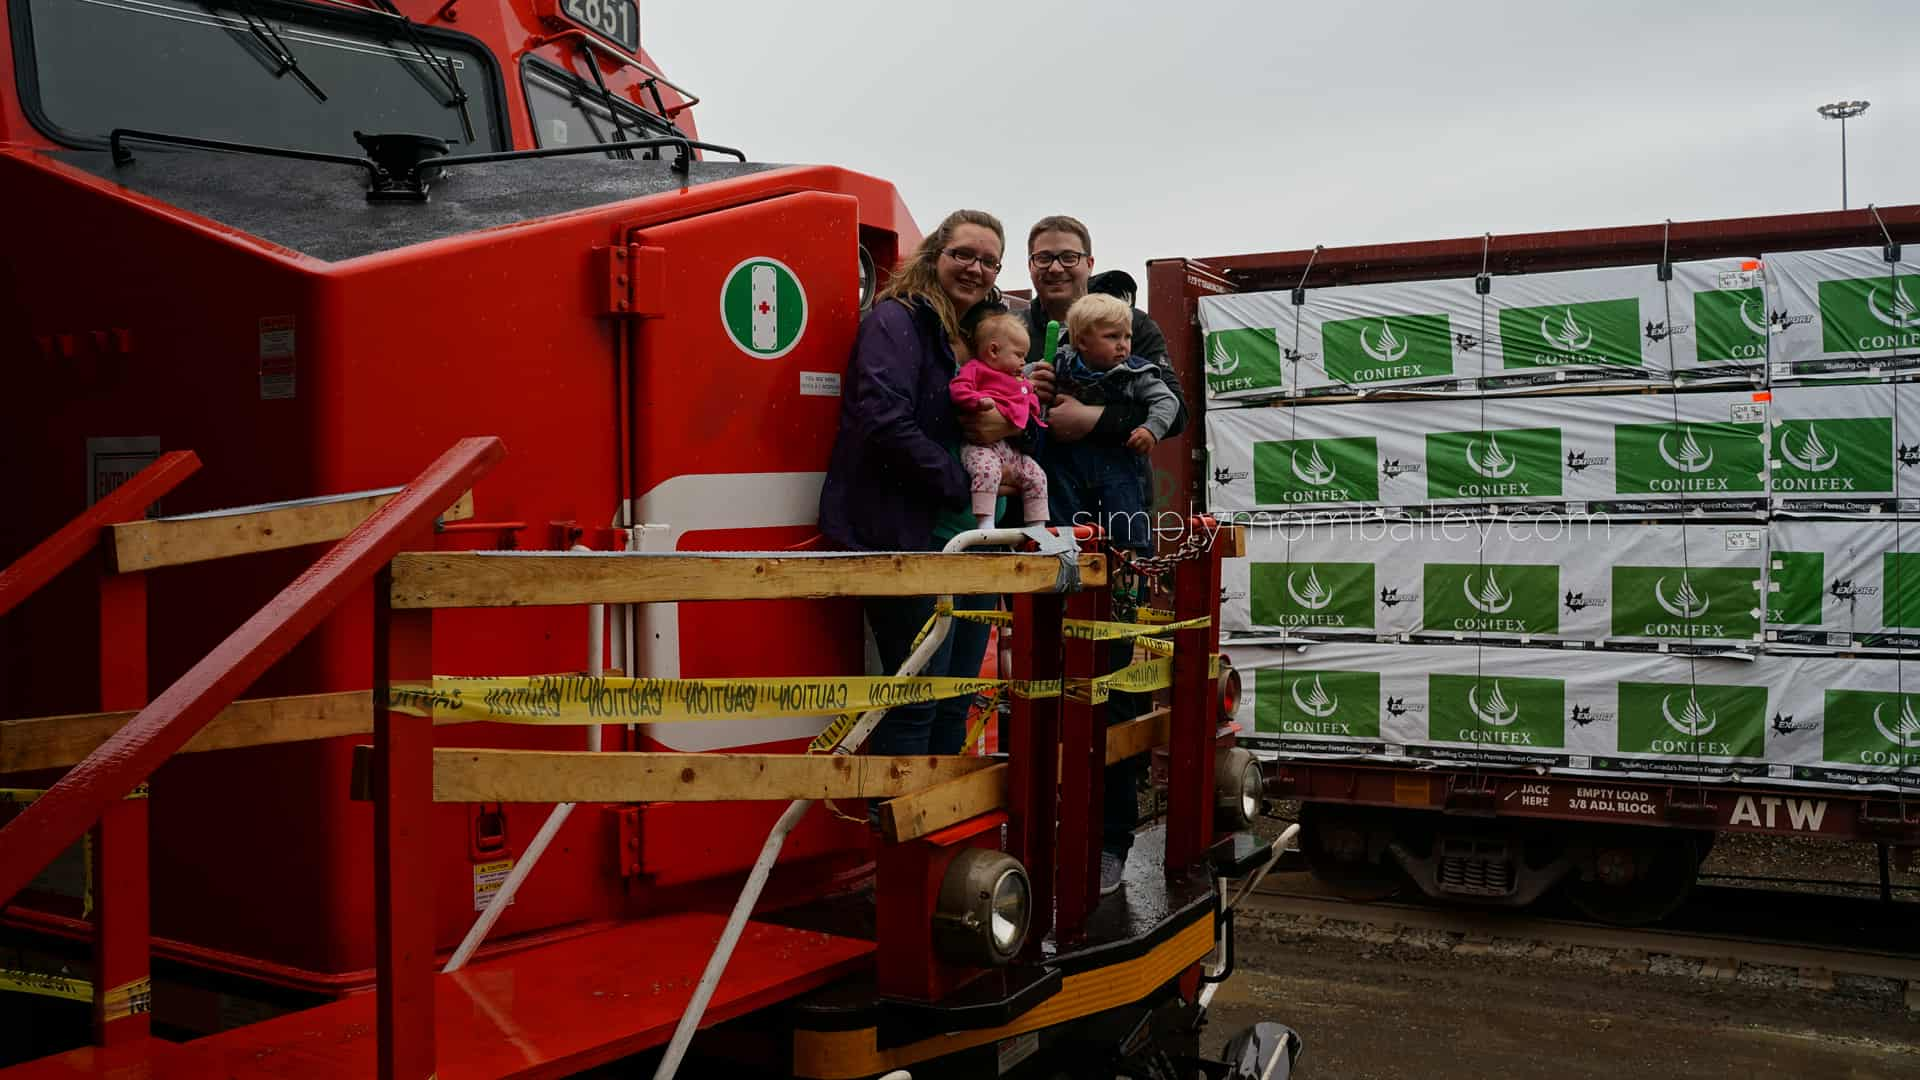 What I've Given Up for the Railway Life - Railroad Career impact on Family